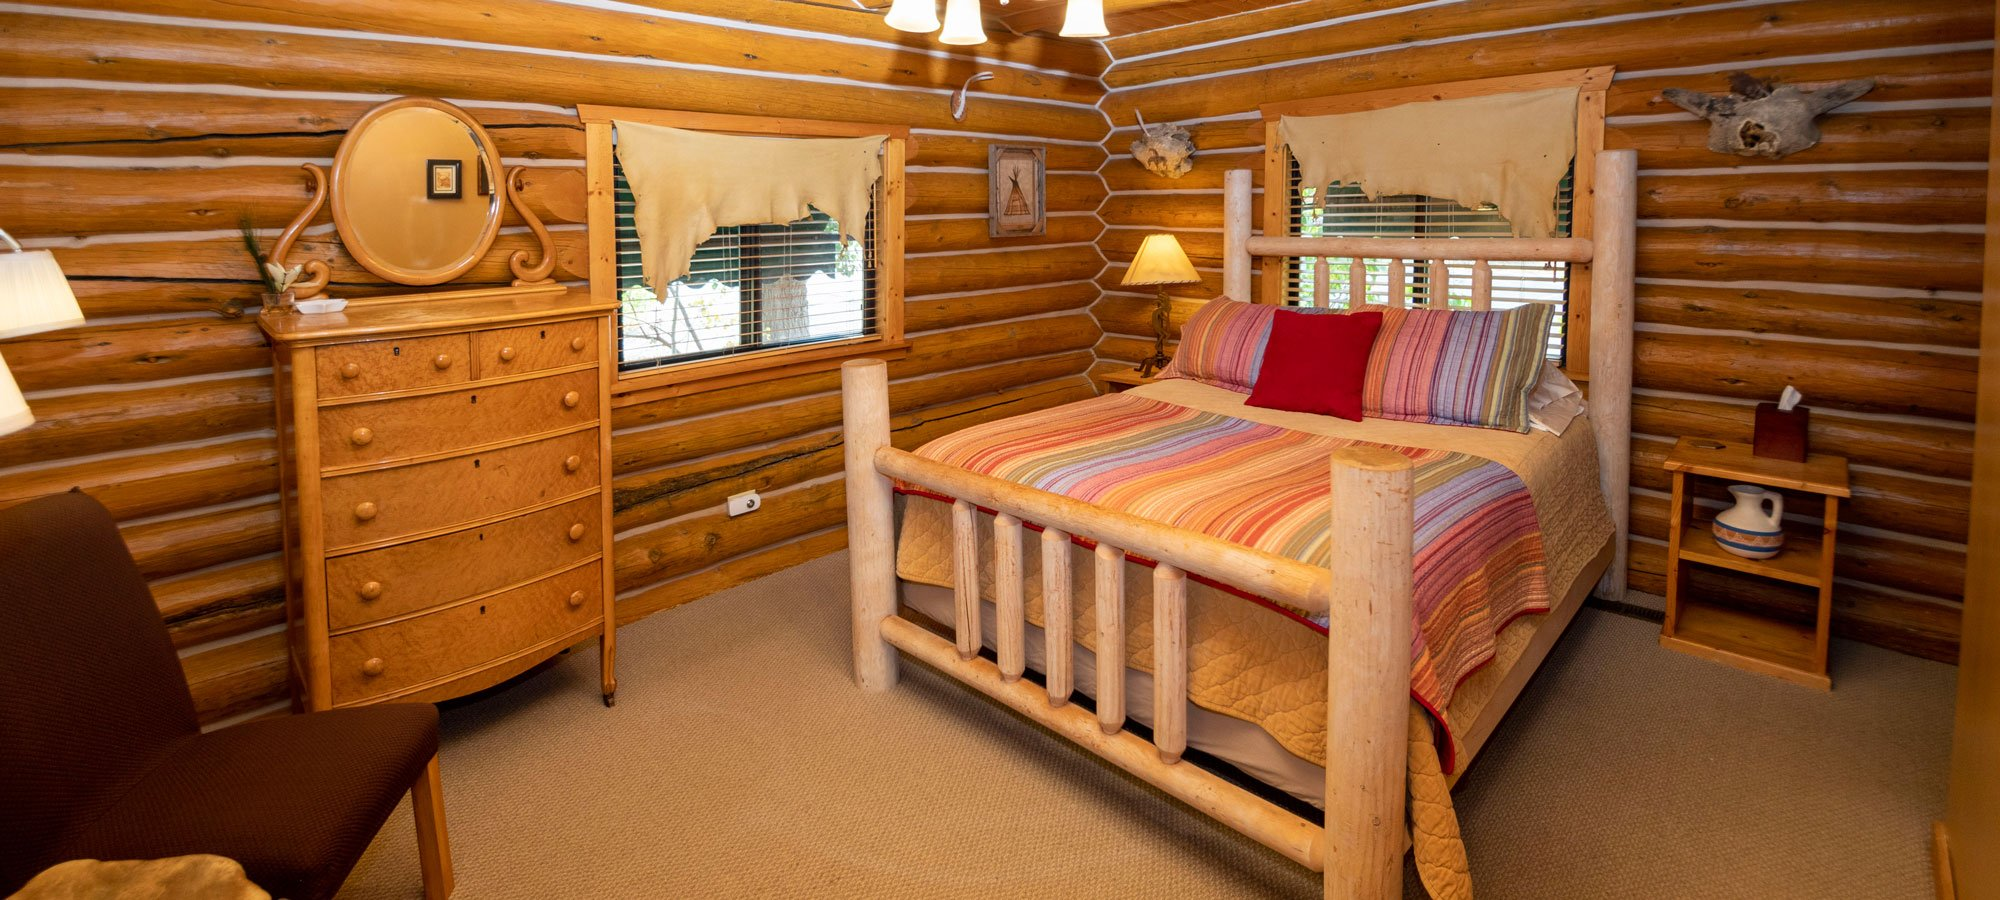 Bed with dresser and chair